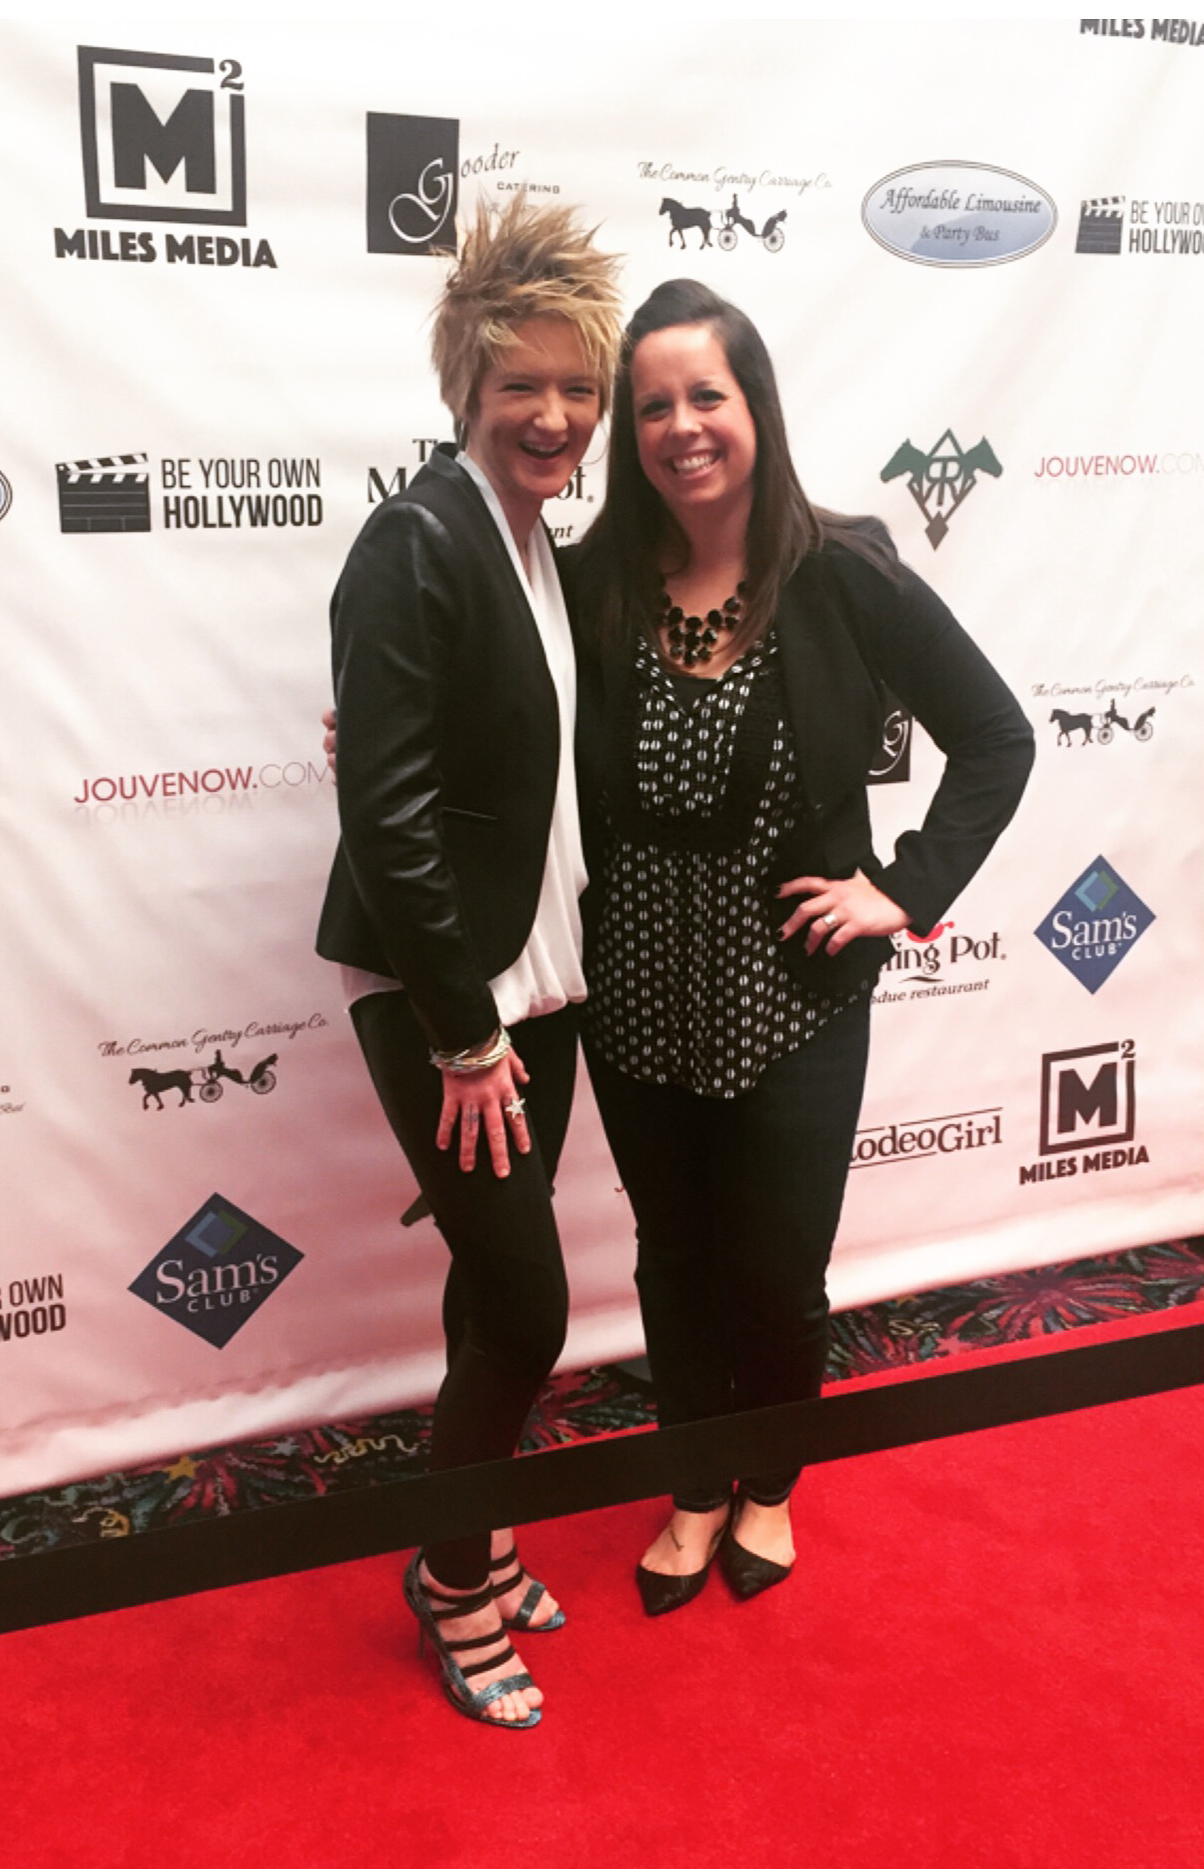 Alum Jen Horling on the red carpet